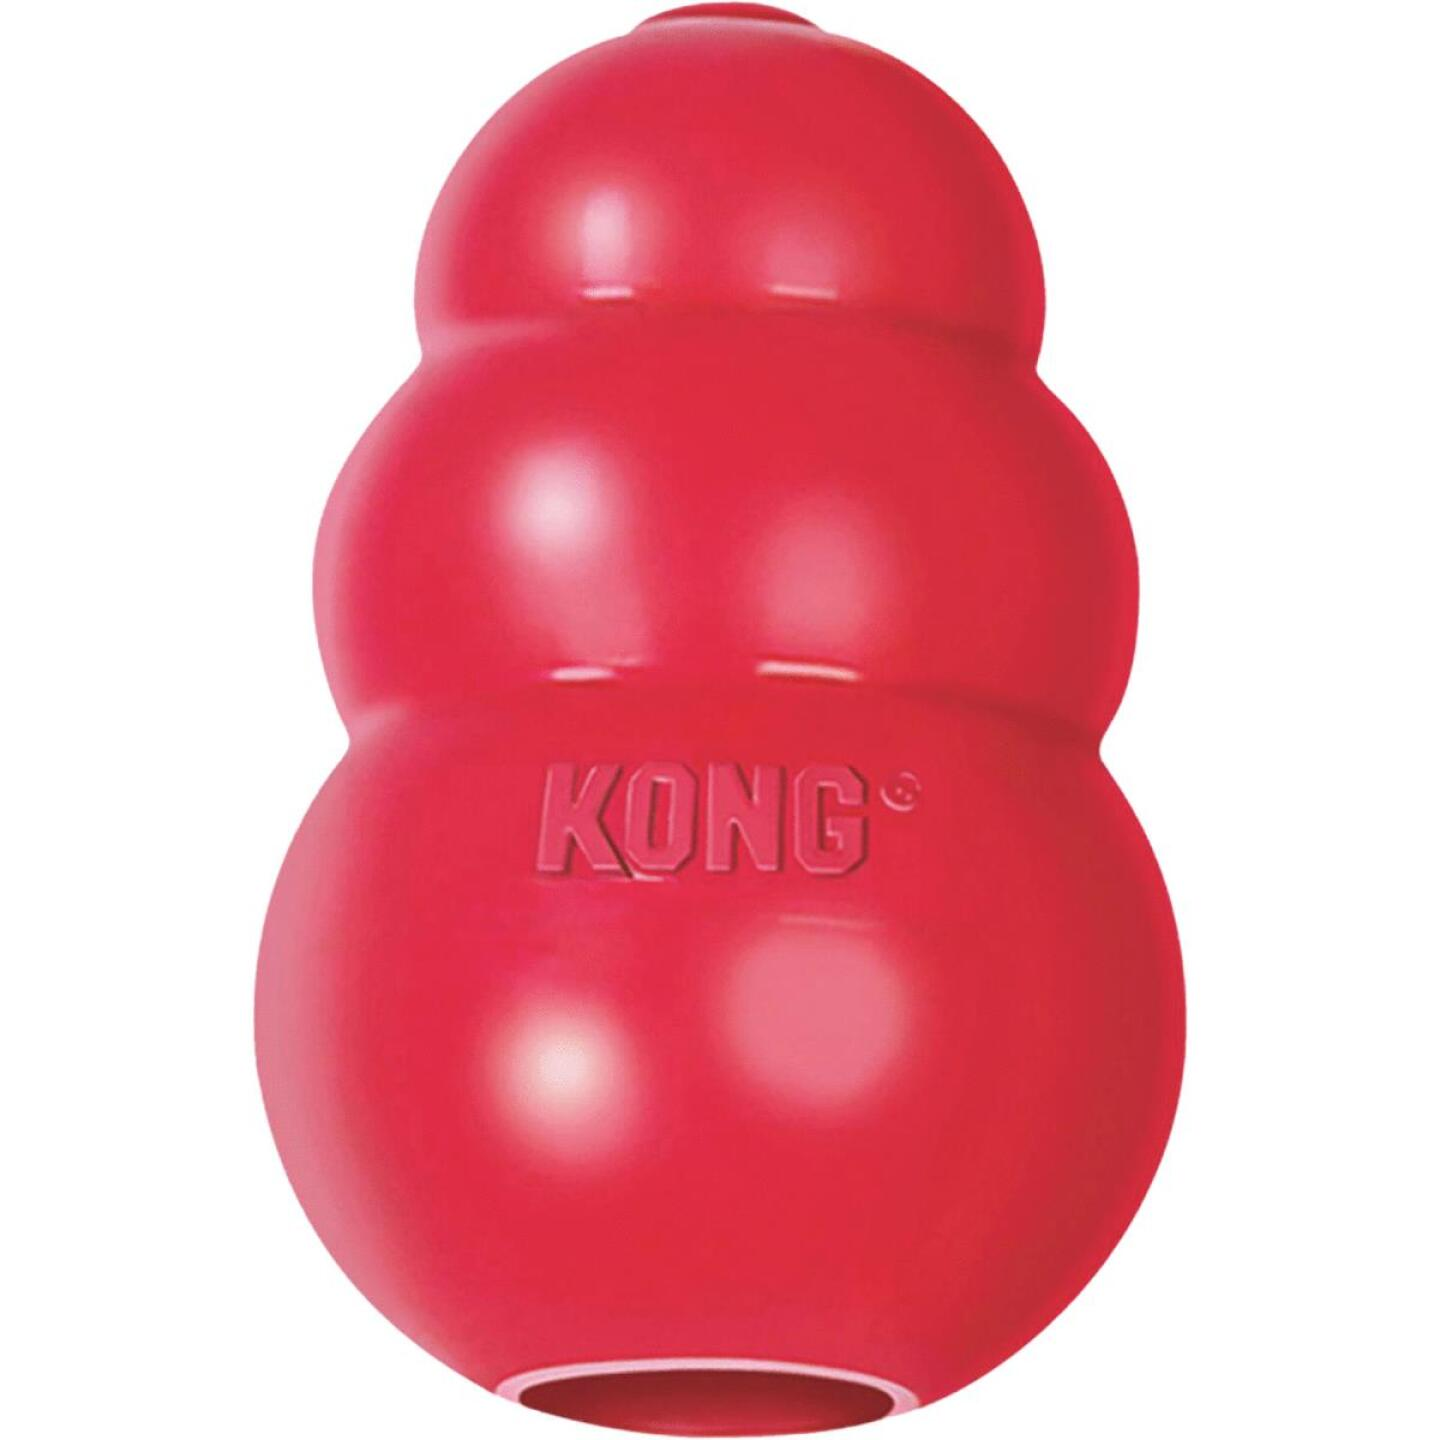 Kong Classic Dog Chew Toy, 15 to 35 Lb. Image 2